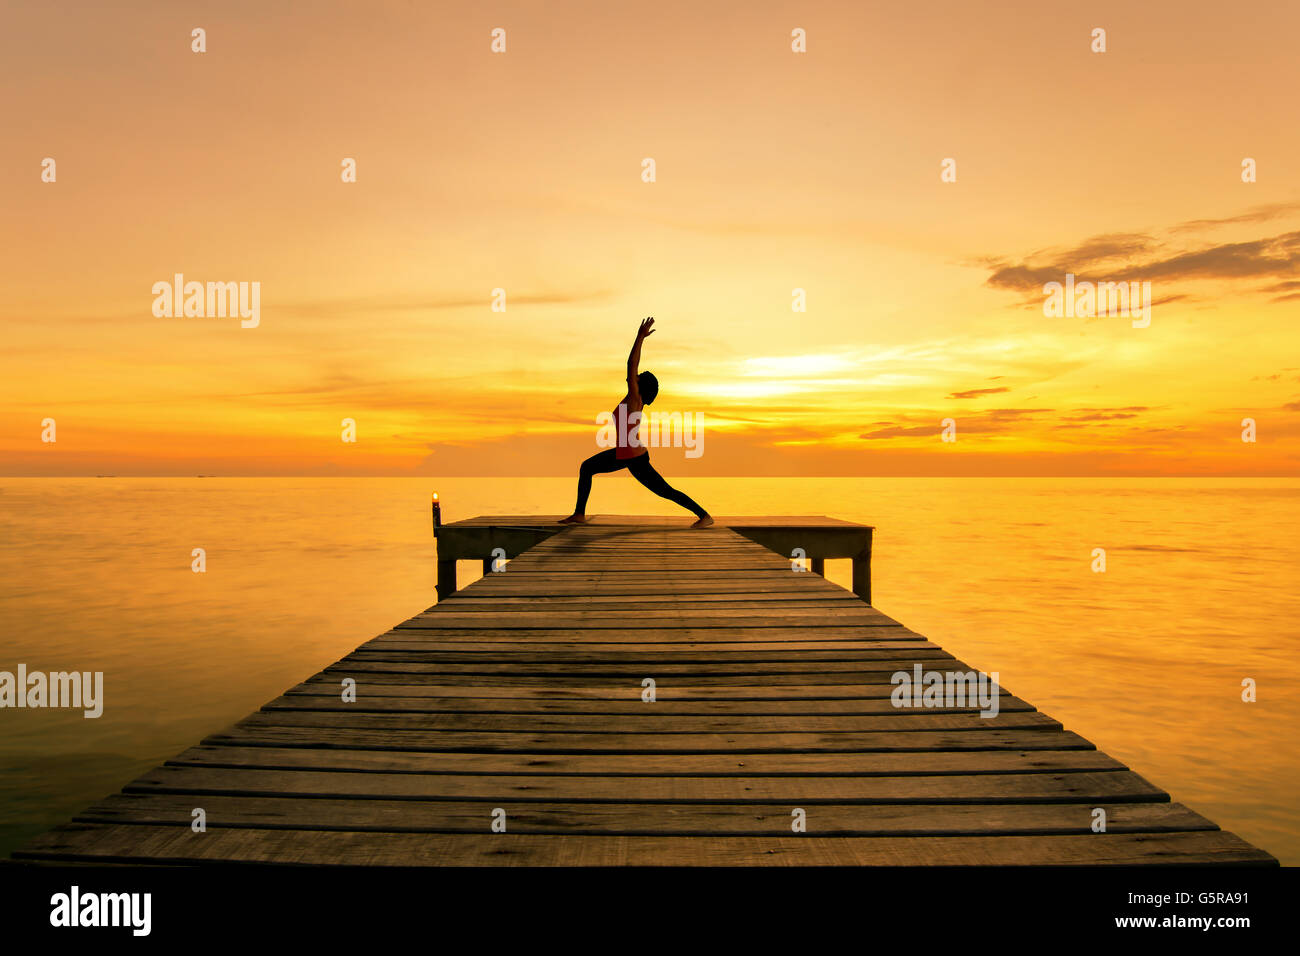 Yoga pose - Woman silhouette practicing yoga Warrior pose on sea bridge at sunset.Yoga near beach. - Stock Image